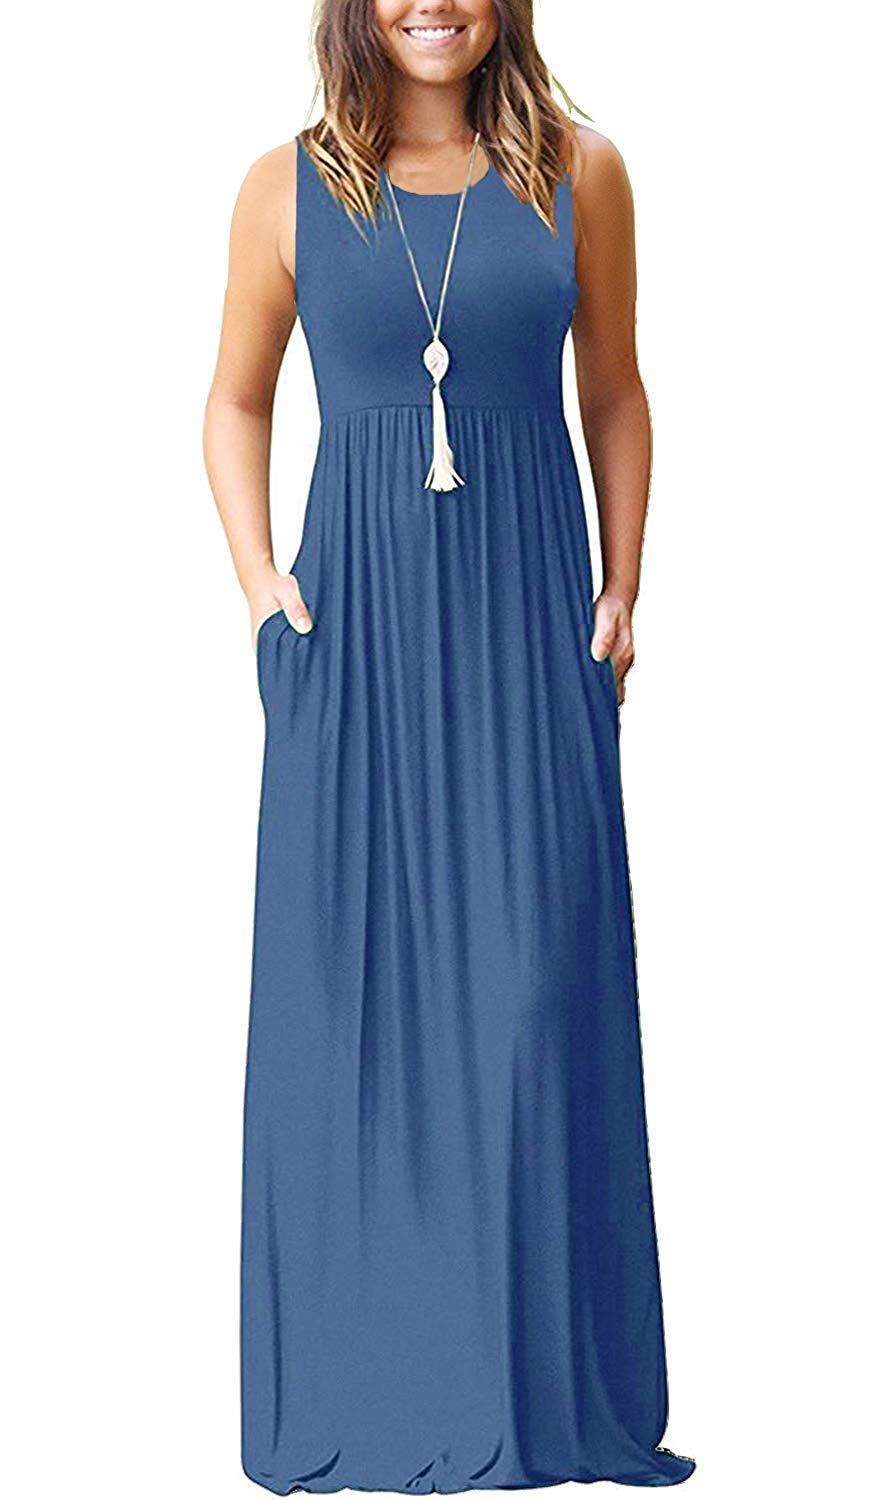 Fudule Womens Elegant Dresses Long Sleeve V-Neck Beach Holiday Party Maxi Dresses Casual Loose Long Dress with Pocket